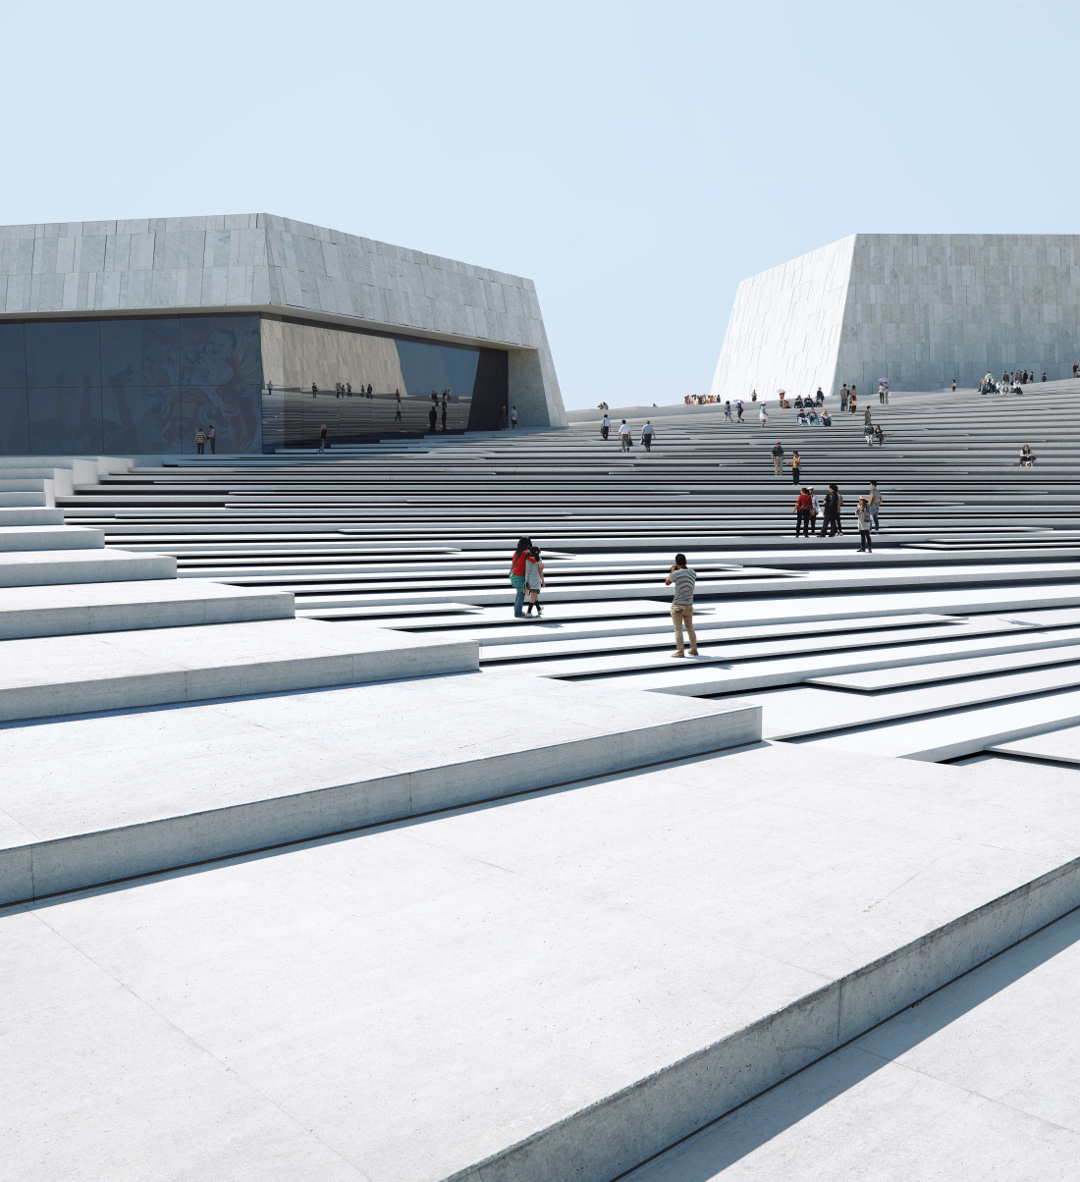 Shanghai Grand Opera House by Snøhetta. Image by MIR and Snøhetta, courtesy of Snøhetta